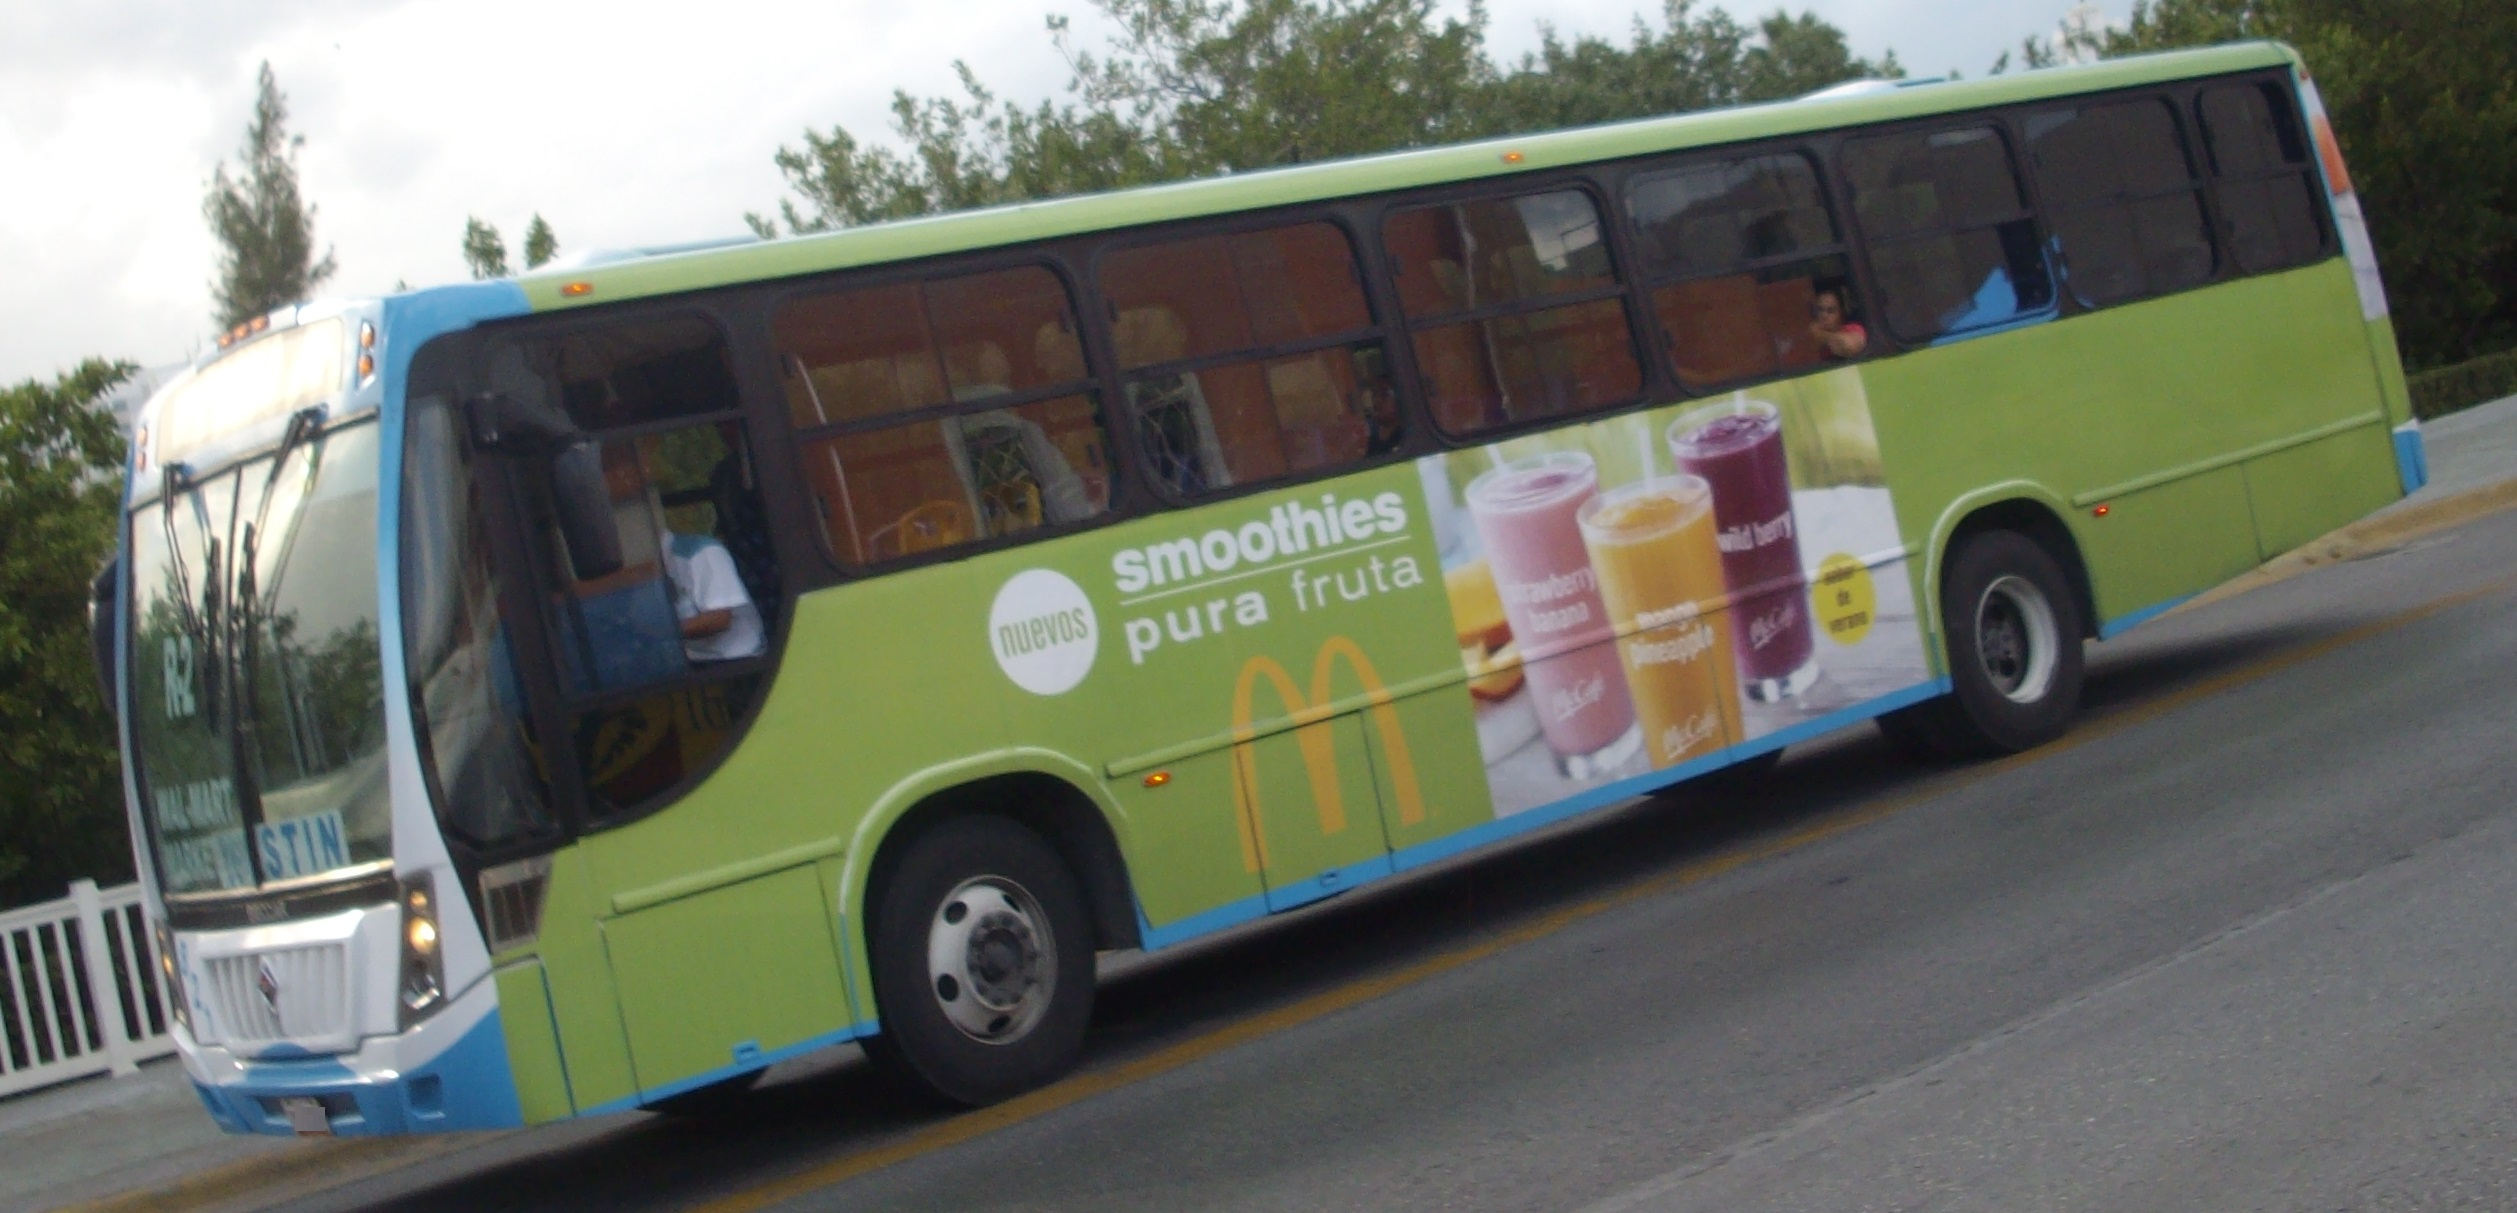 File:McDonald's Ad On Cancun Bus.JPG - Wikimedia Commons